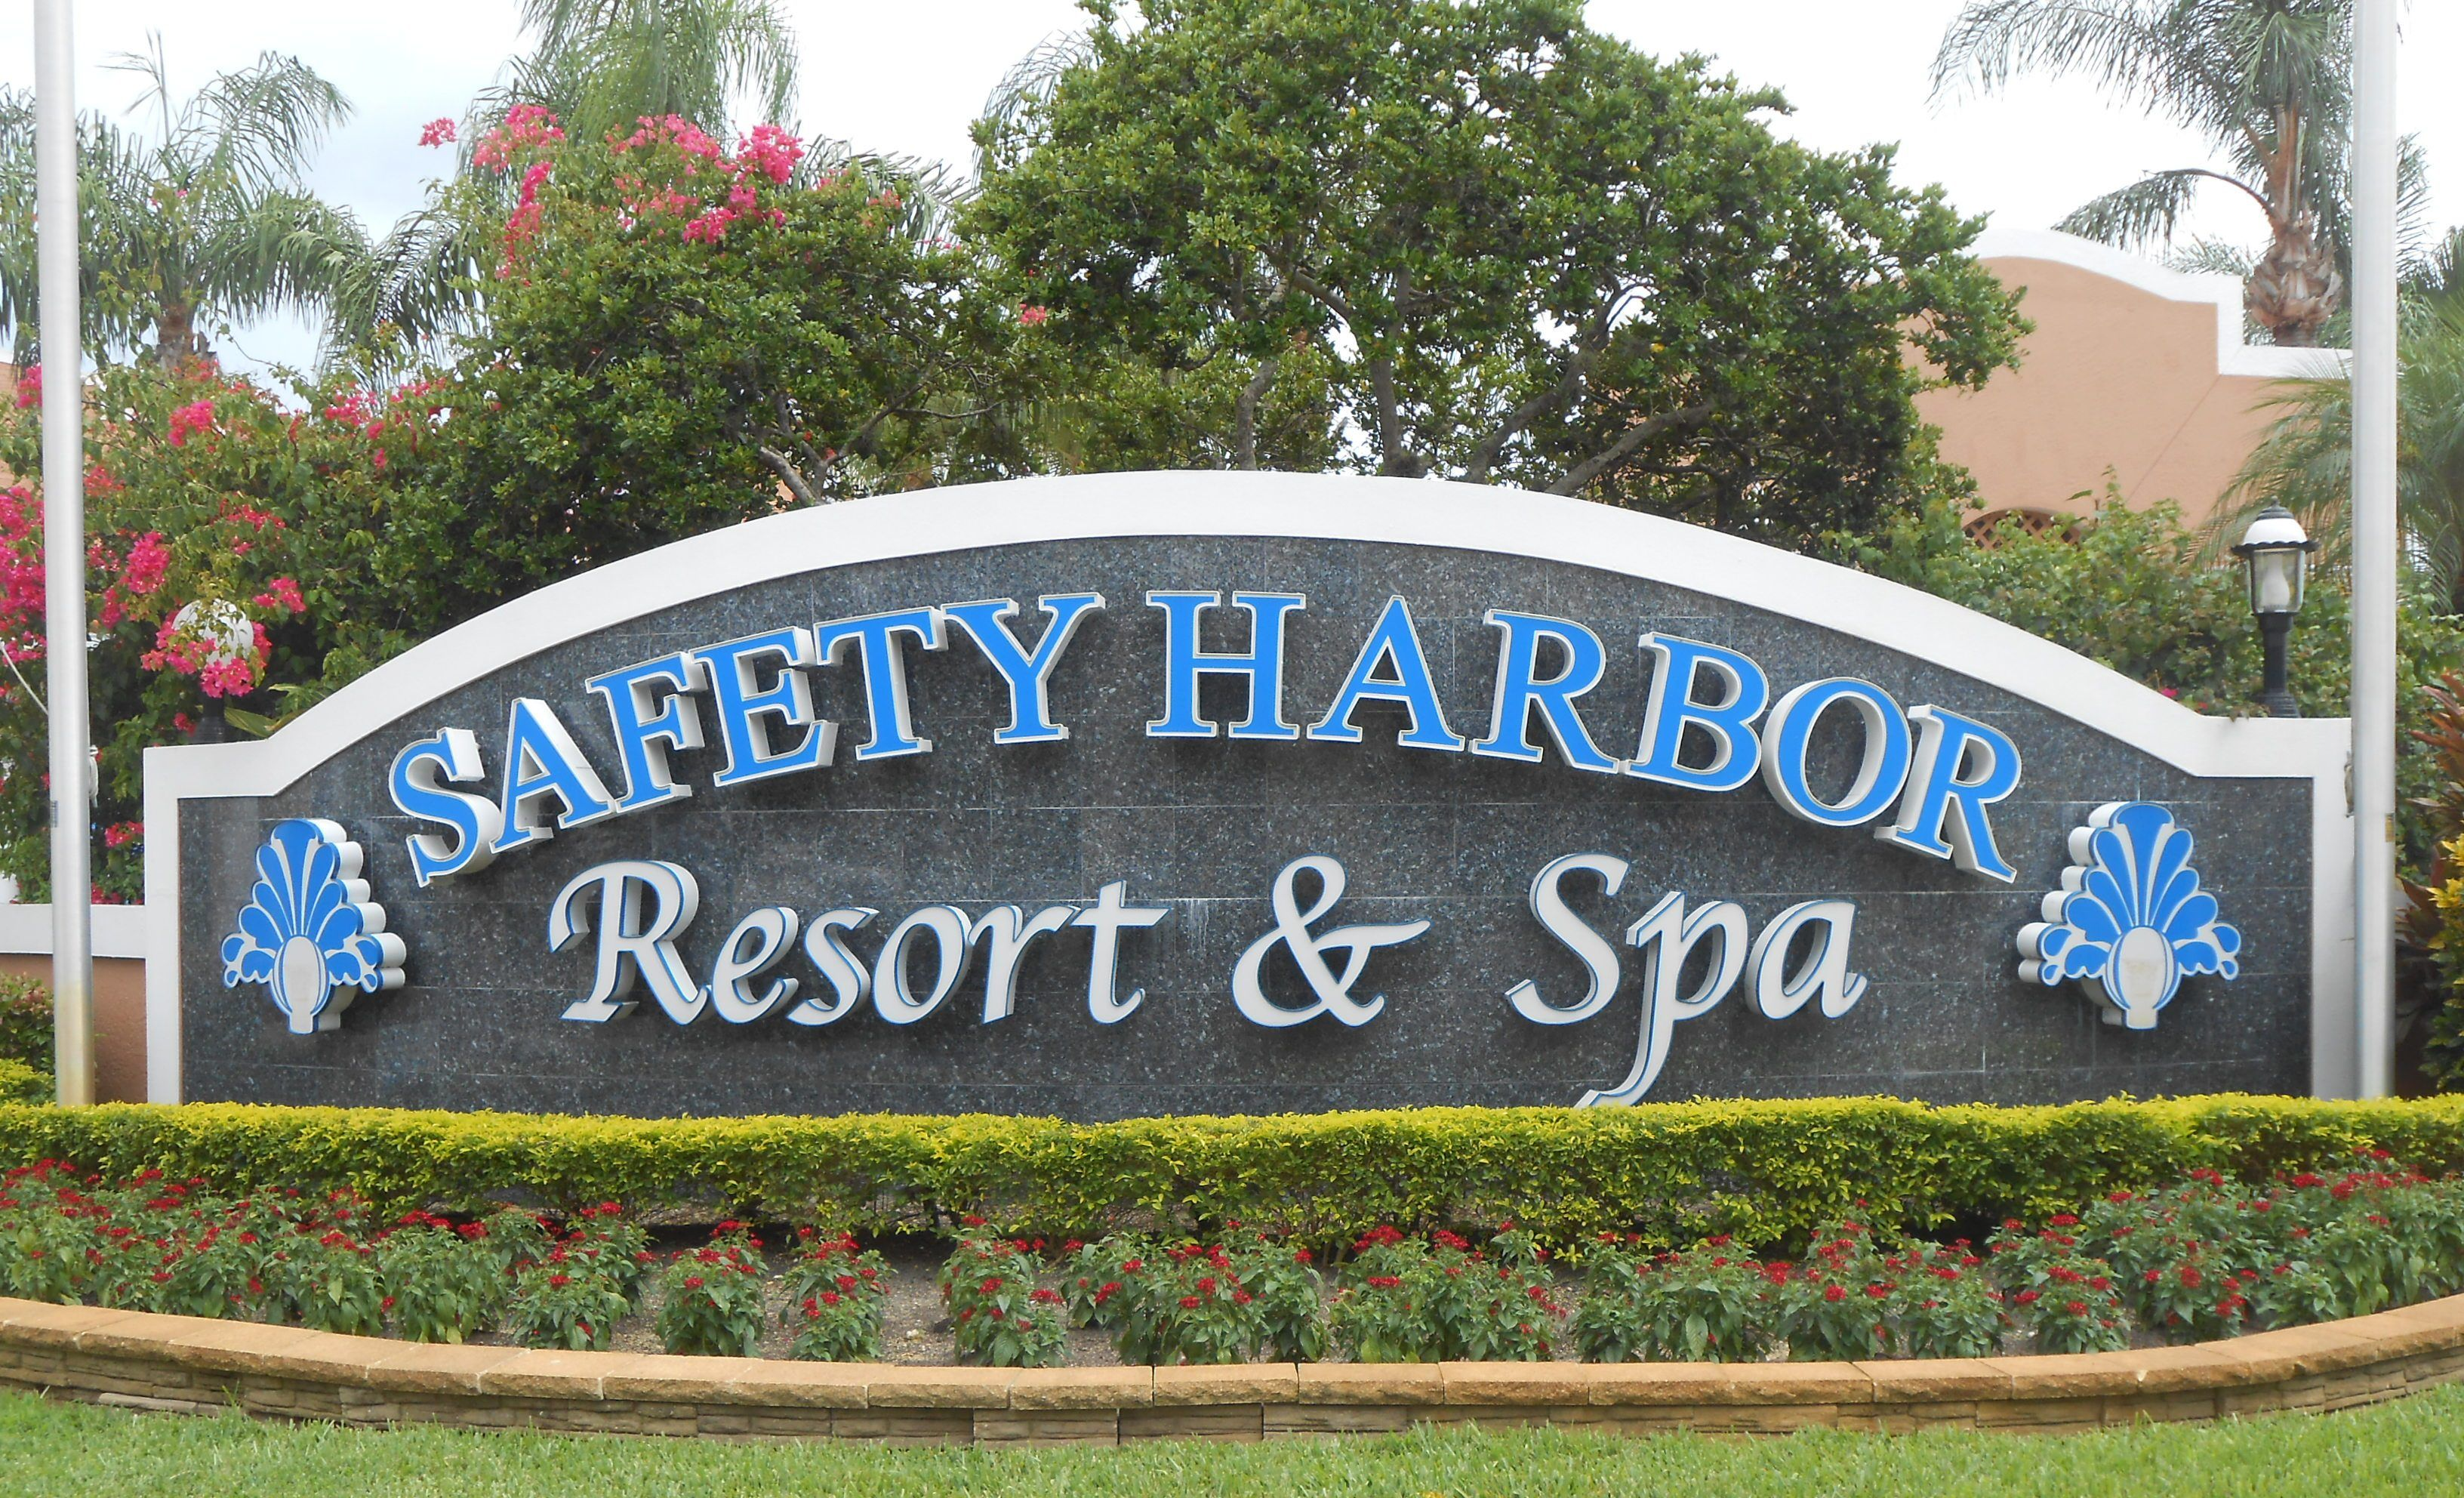 The big draw to the small town Safety harbor, Resort spa